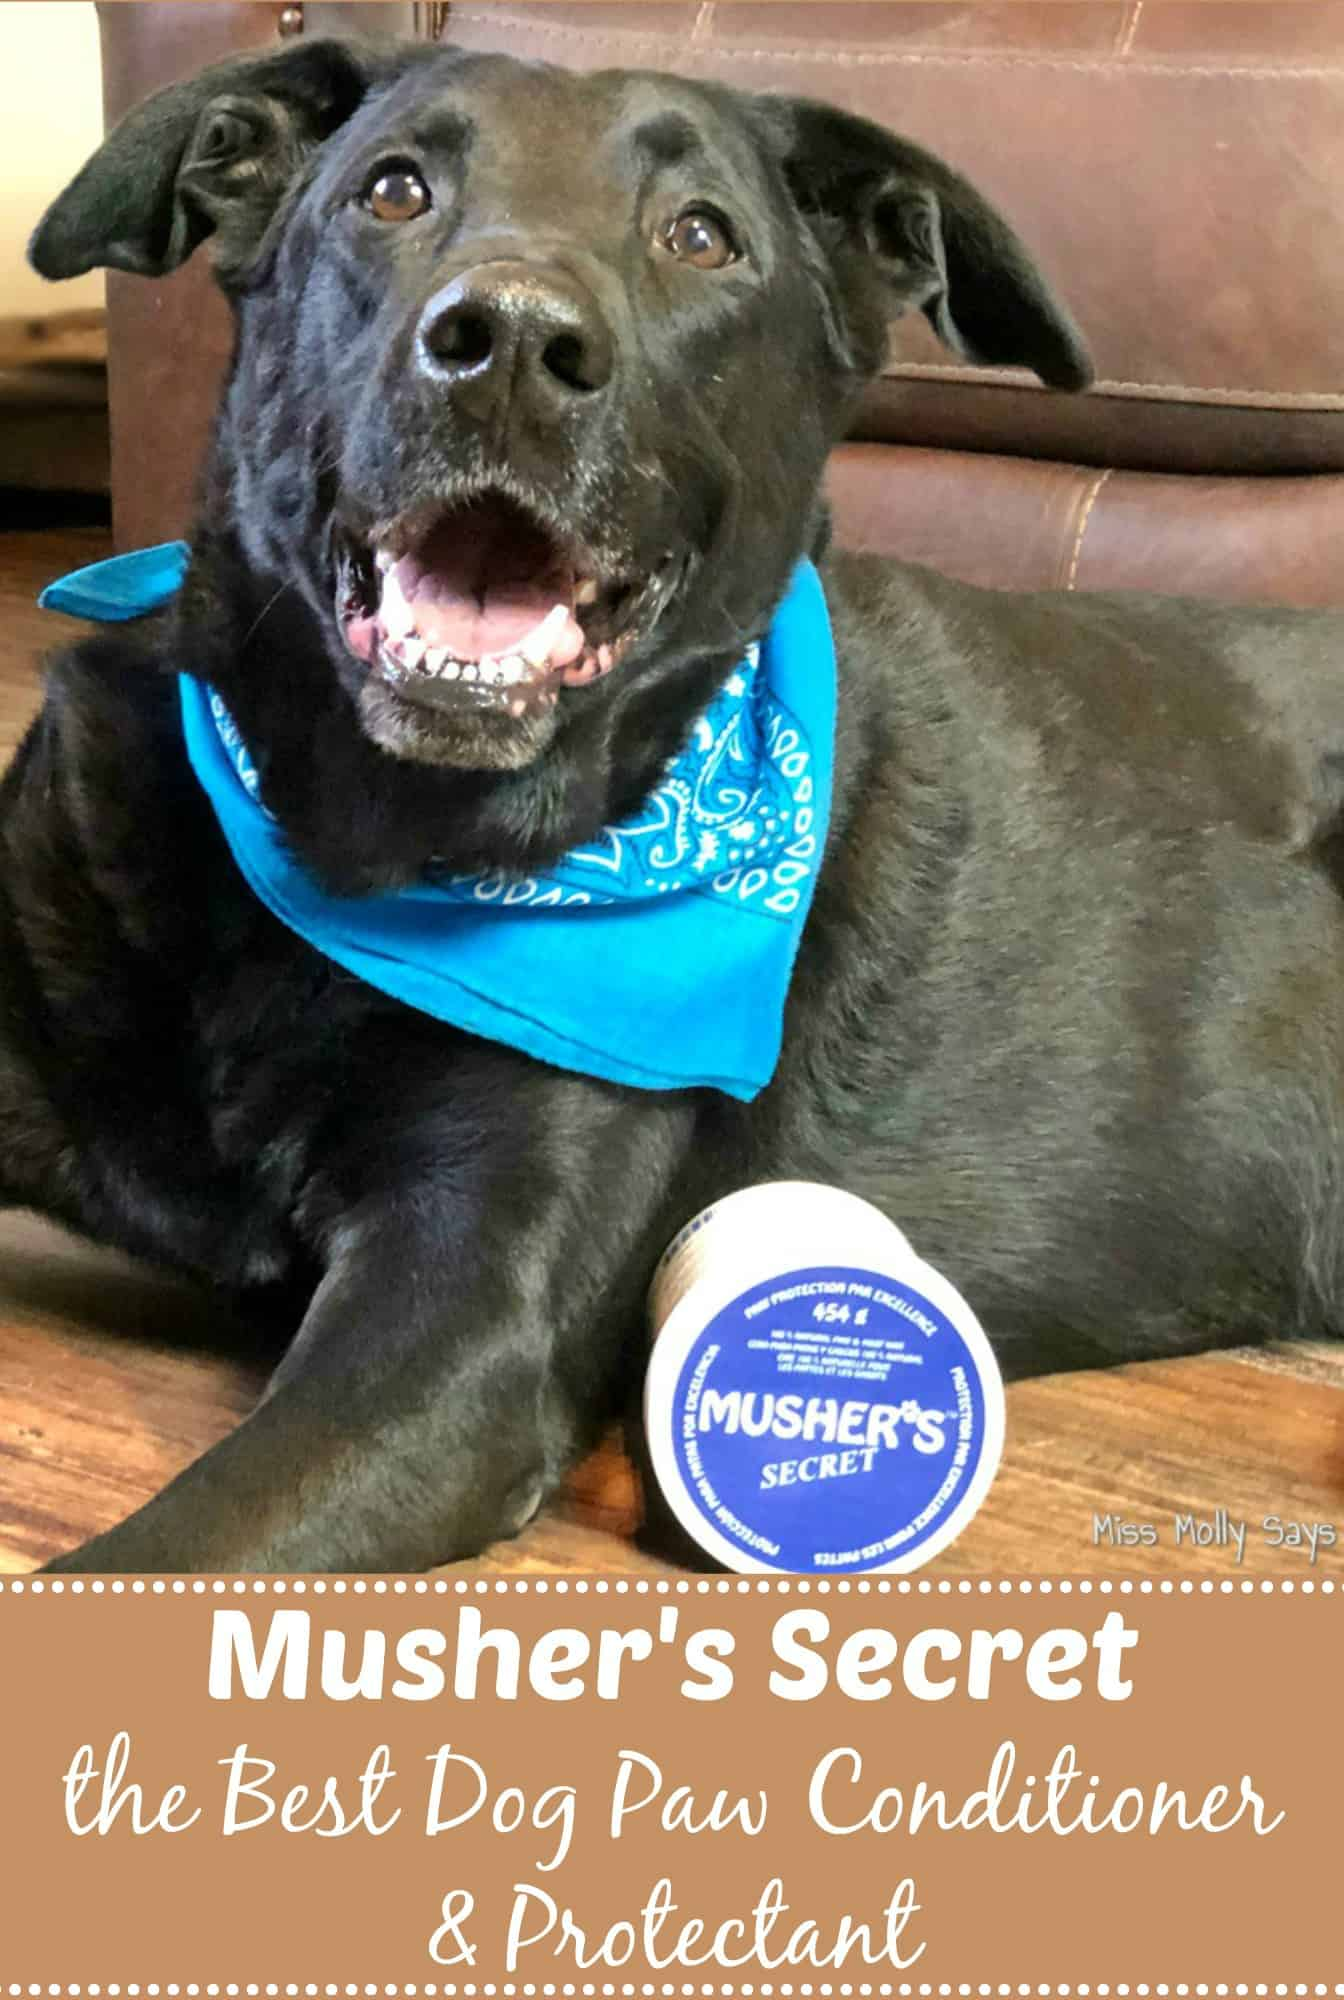 Musher's Secret is the Best Dog Paw Conditioner & Protectant